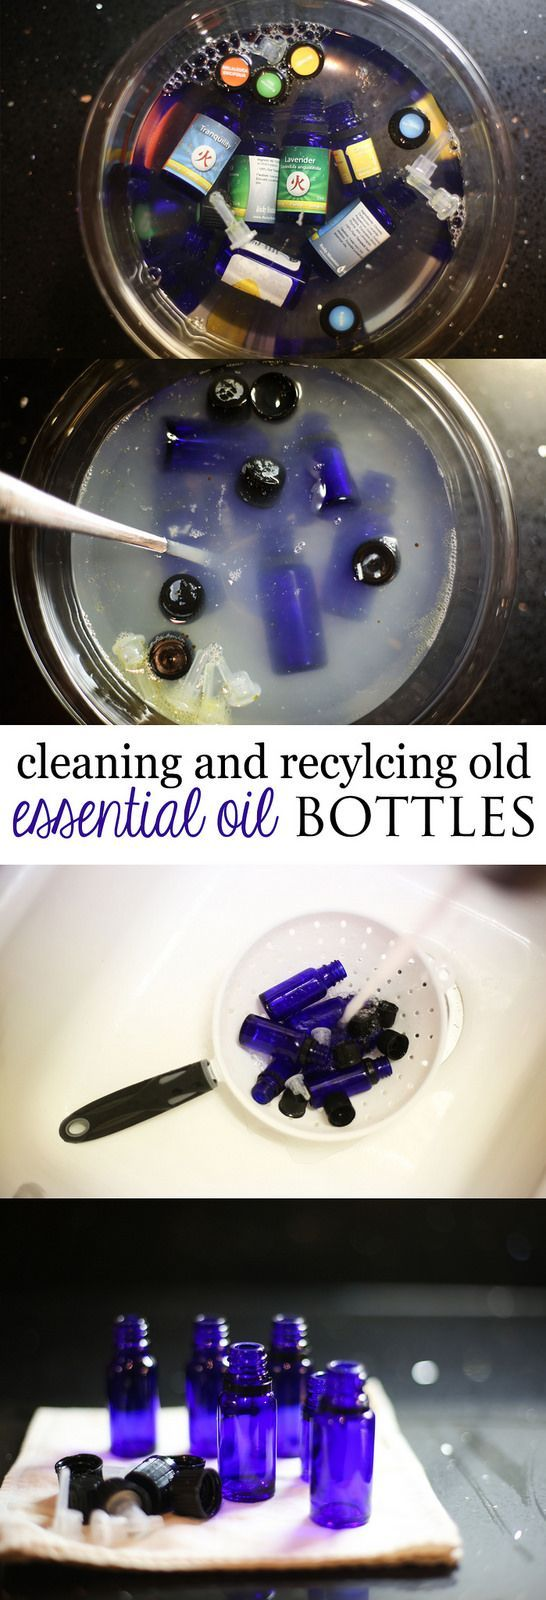 How to clean and recycle old Essential Oil Bottles